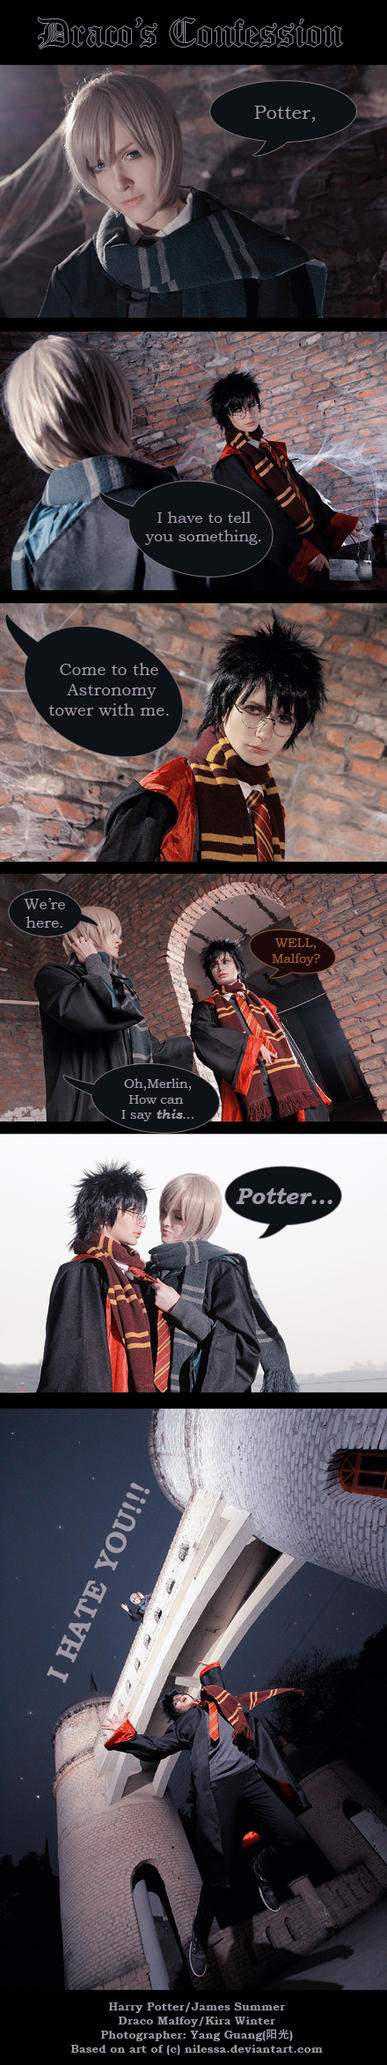 Draco's Confession - Harry Potter by kirawinter